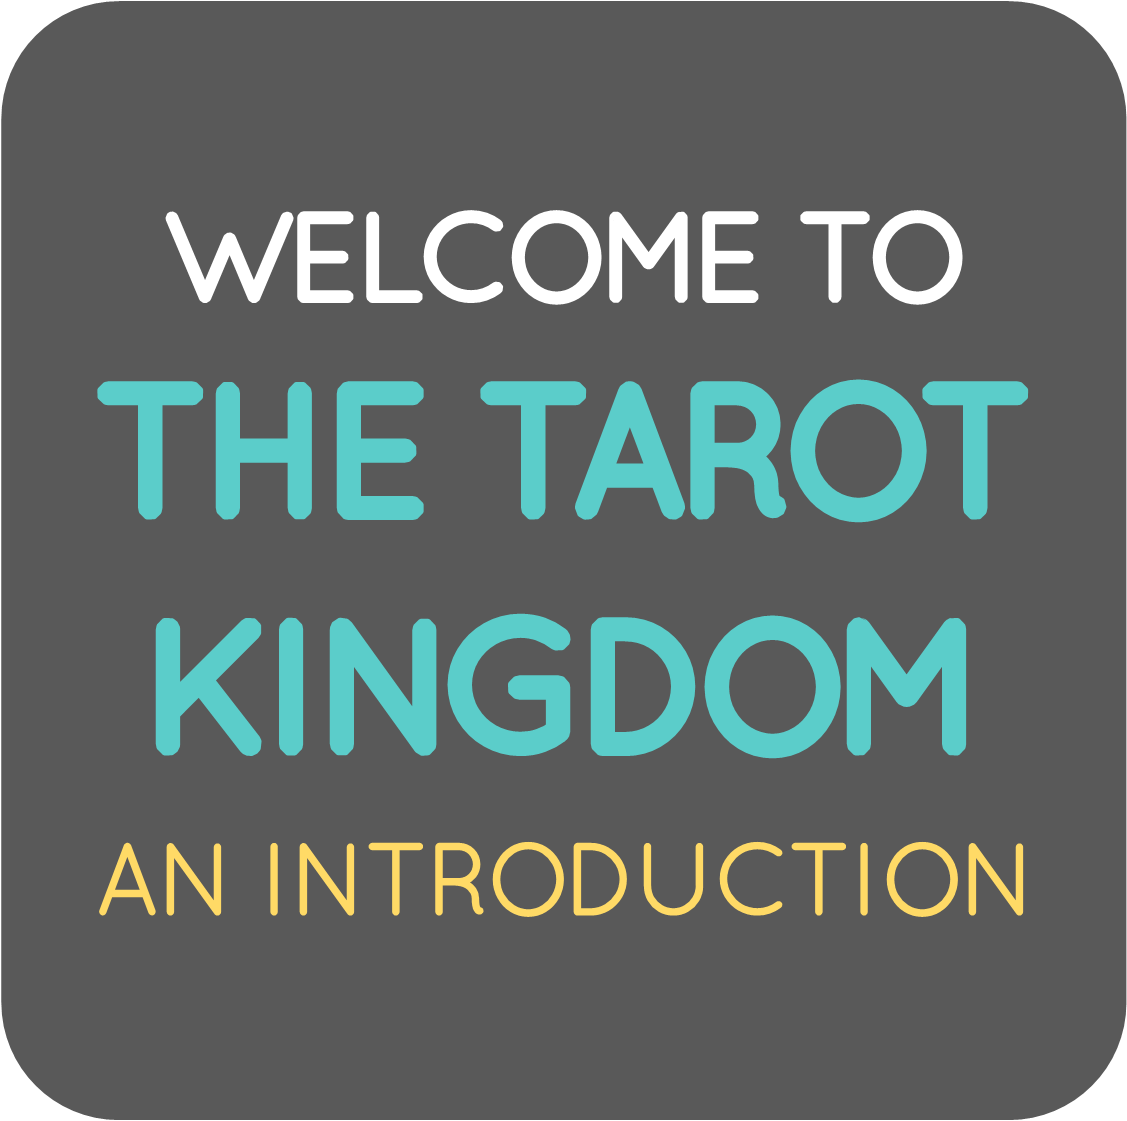 intro to the tarot kingdom squarespace image.png